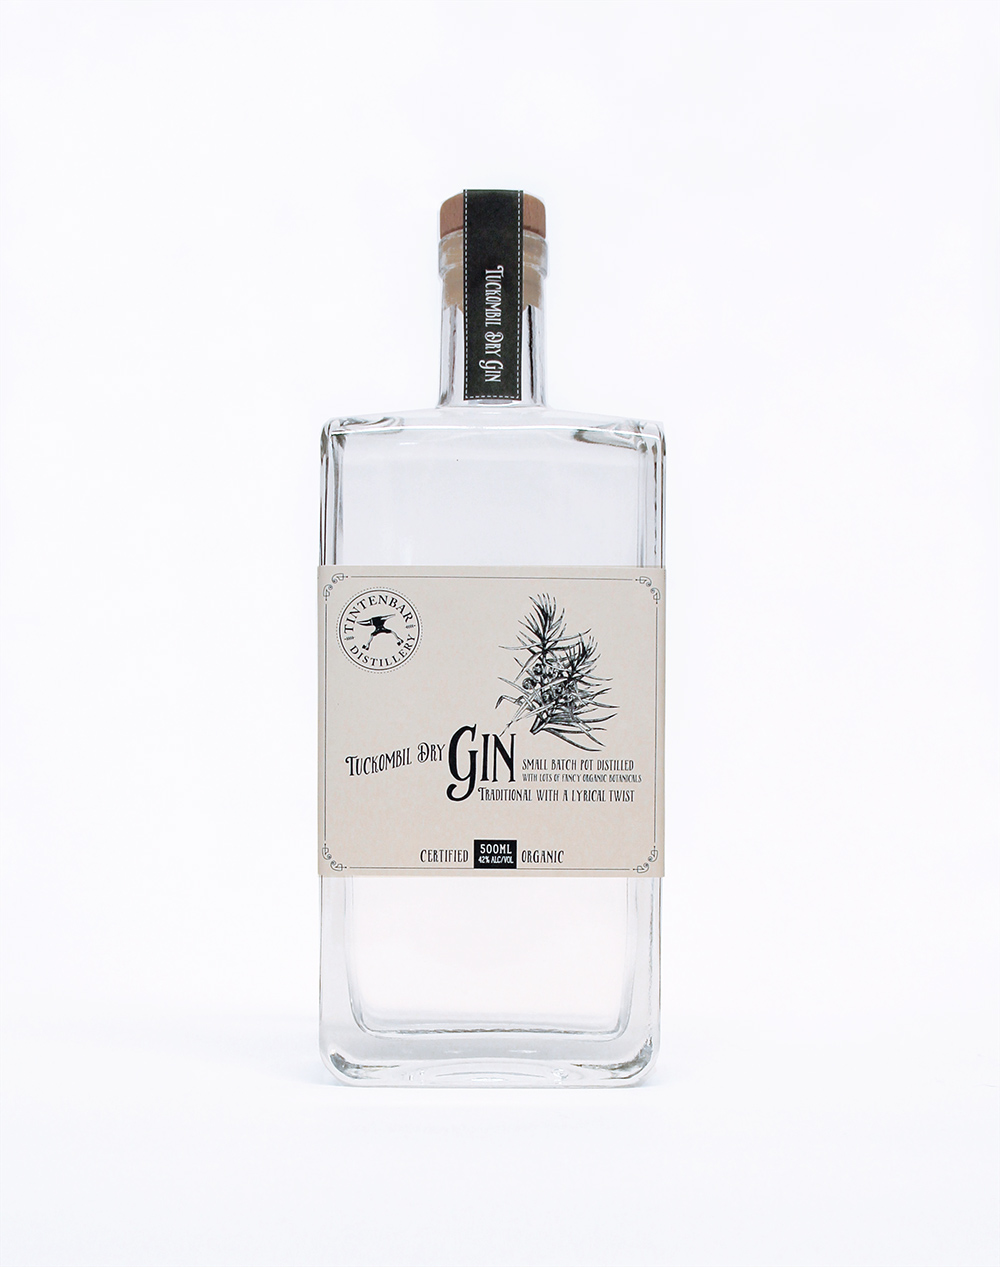 Tuckombil Dry Gin 500ml product photo